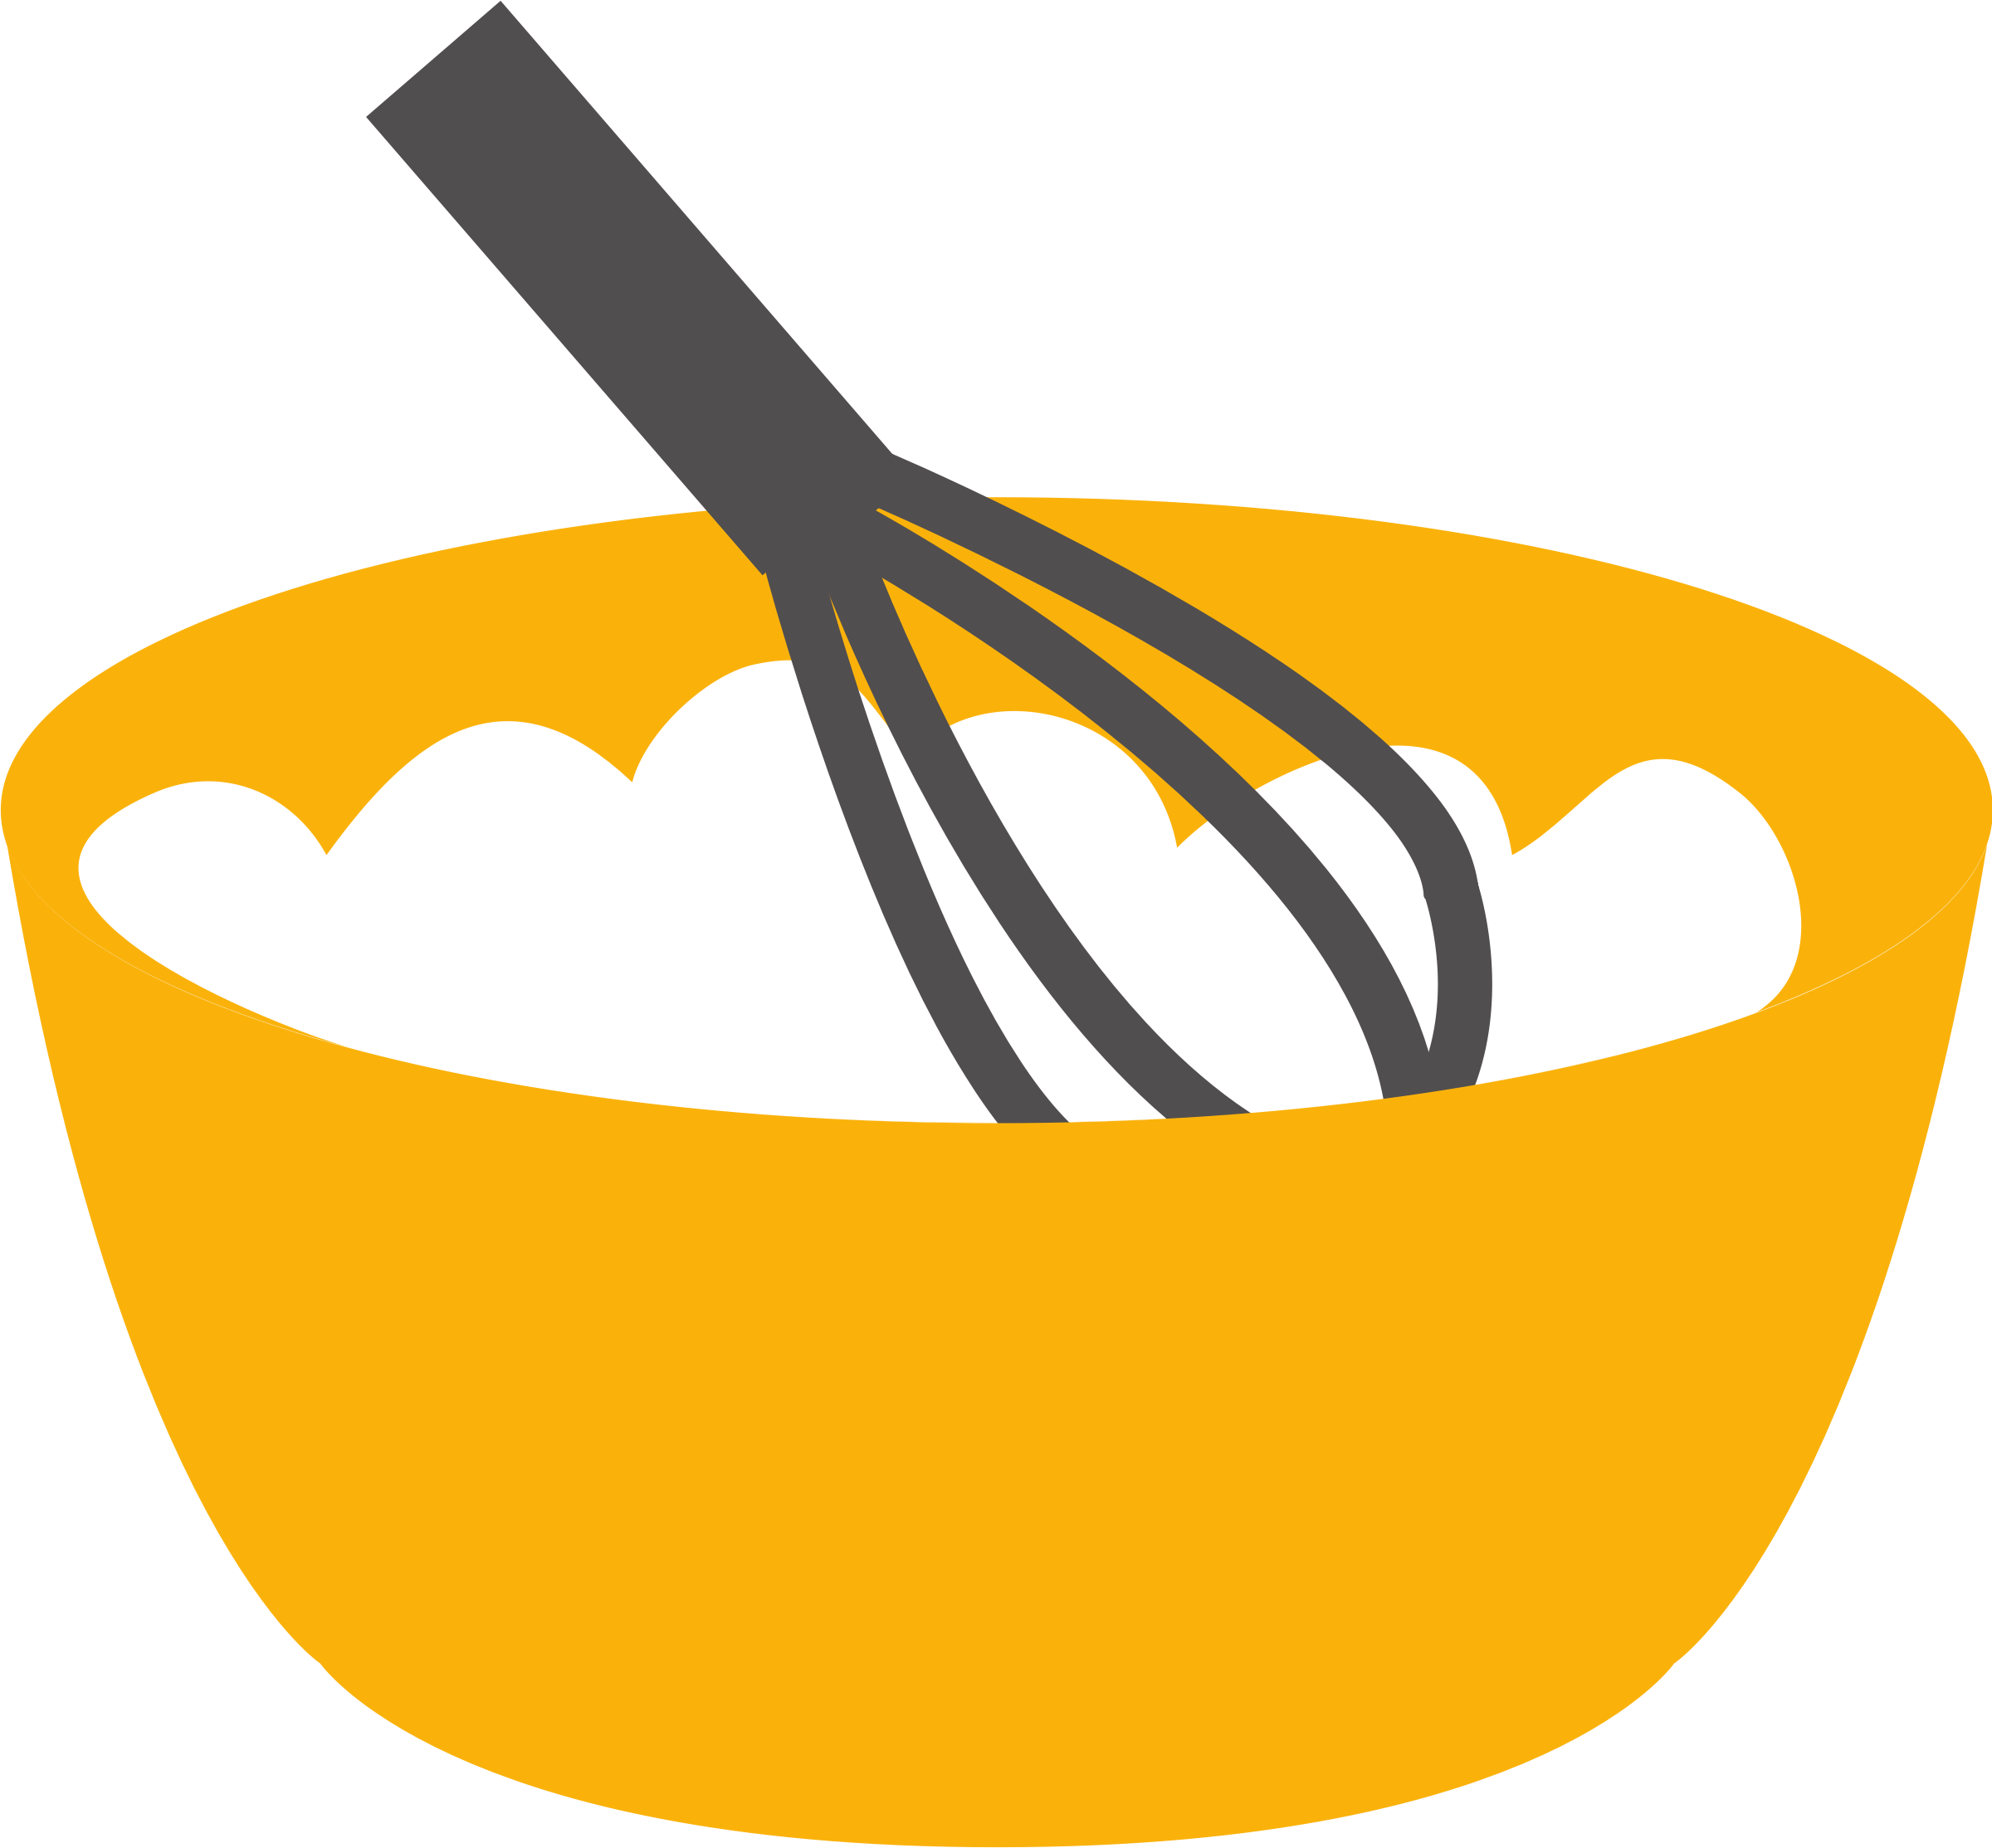 Clipart baking whisk and. Kitchen clip image royalty free stock